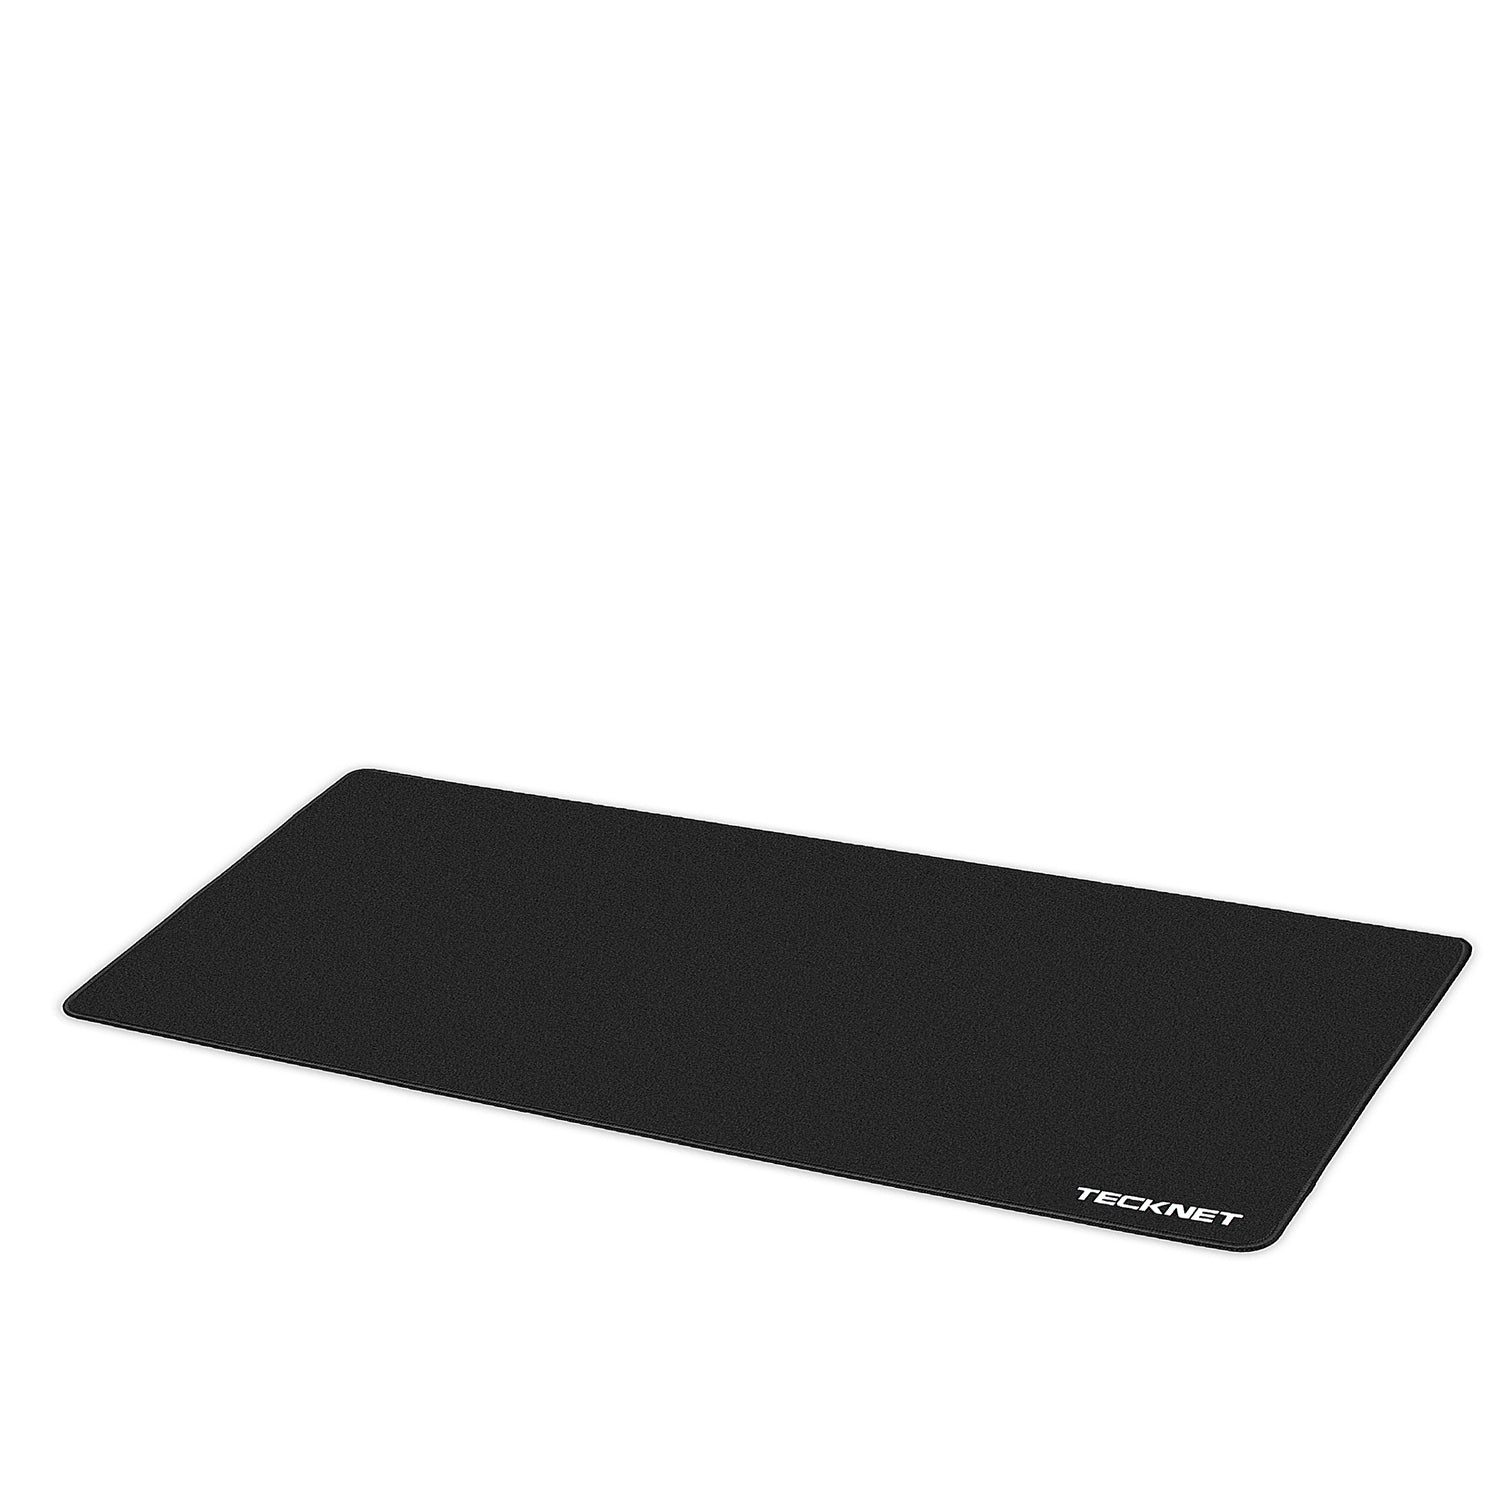 TECKNET Extended Gaming Mouse Pad, 900 x 450 x 3 mm